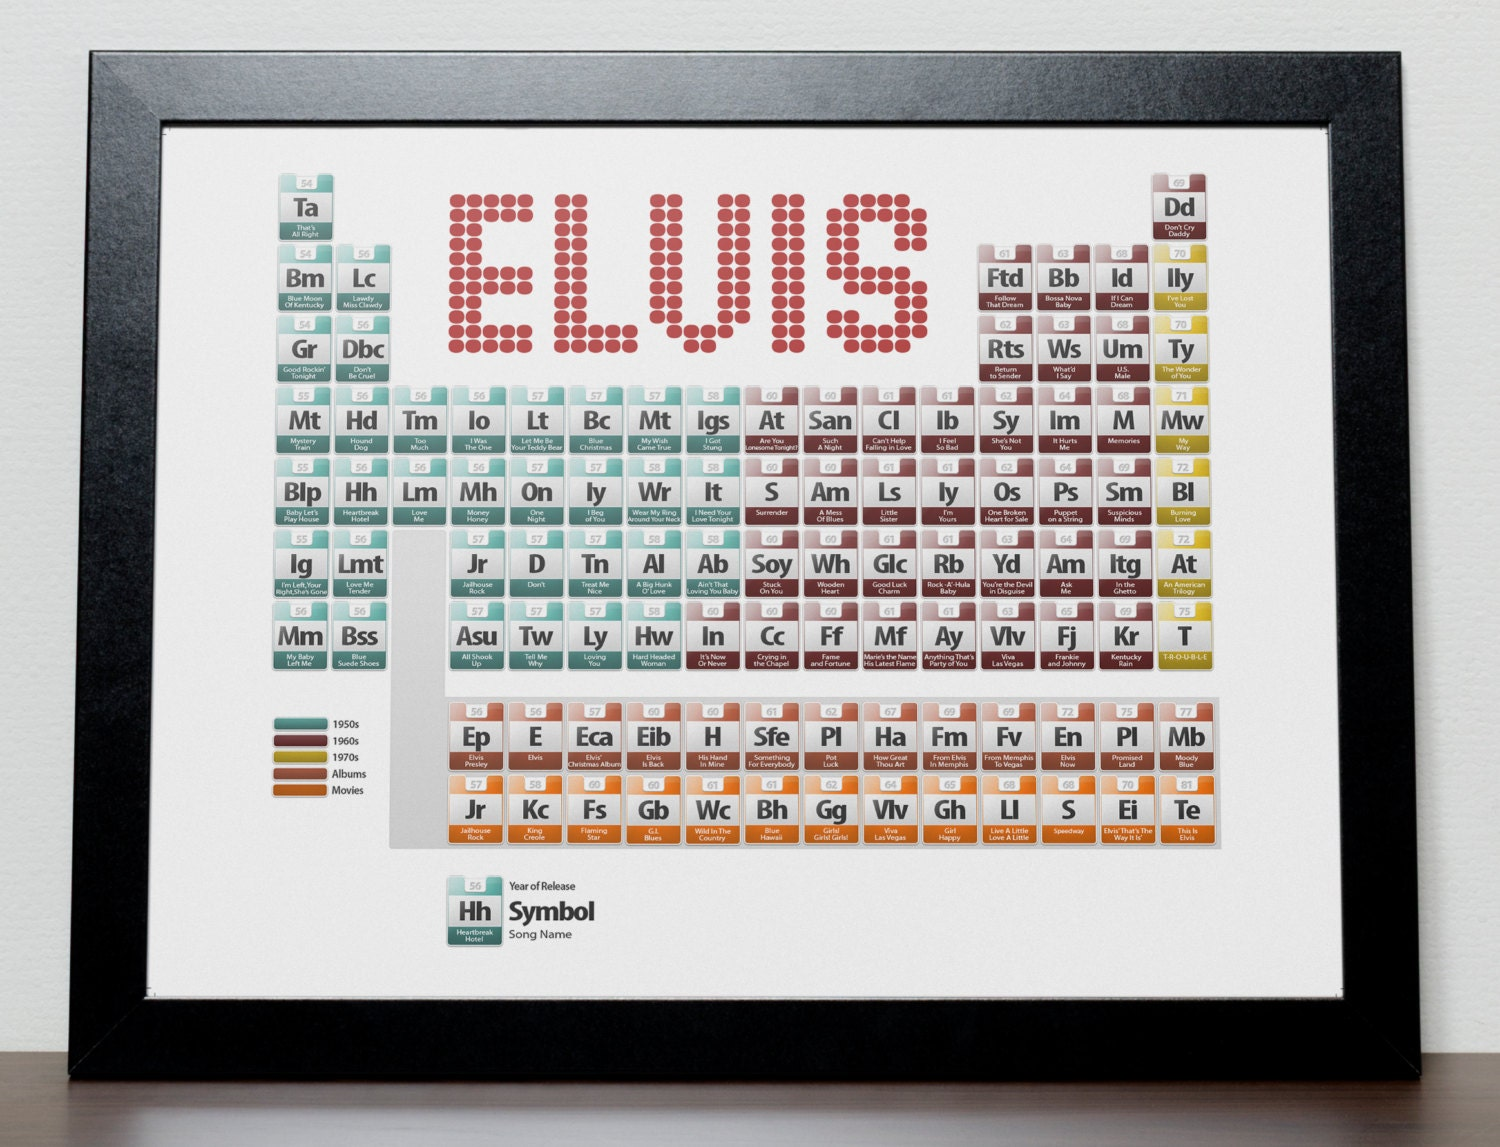 Elvis presley discography periodic table poster zoom urtaz Choice Image